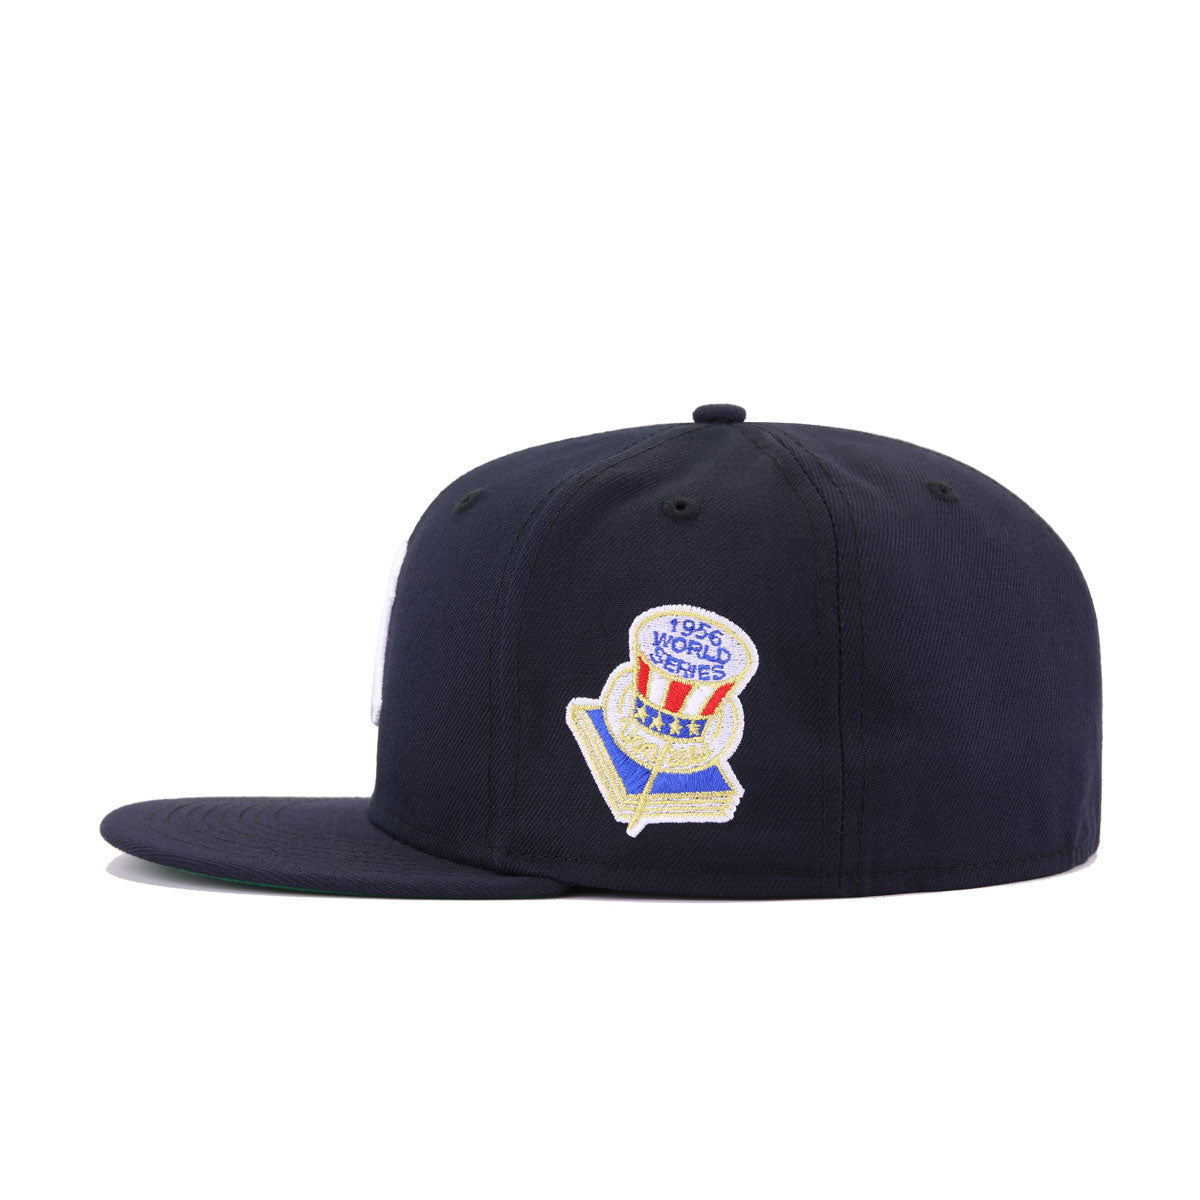 New York Yankees Navy 1956 World Series Cooperstown Green Bottom New Era 59Fifty Fitted